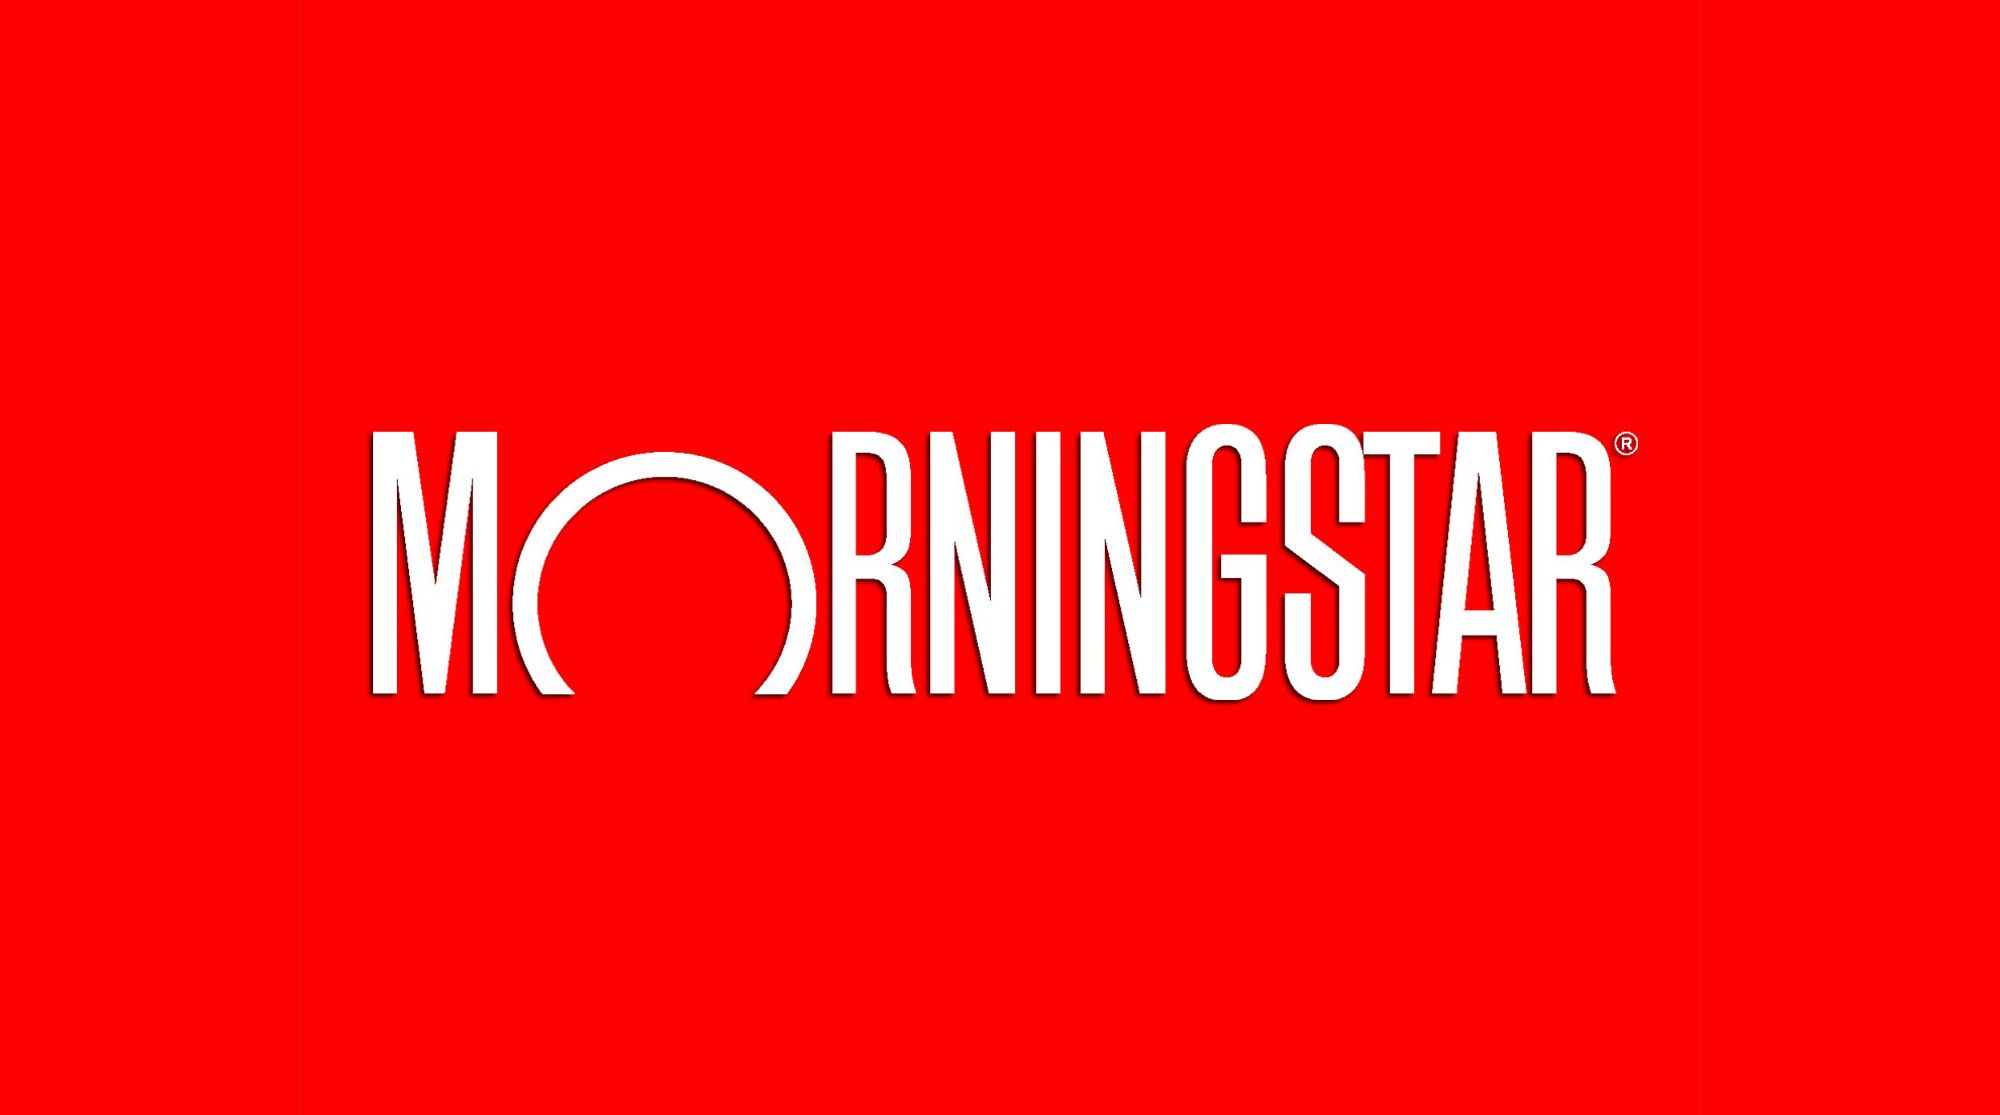 https://savr.ghost.io/content/images/2020/03/morningstar-awards-2020-1.jpg